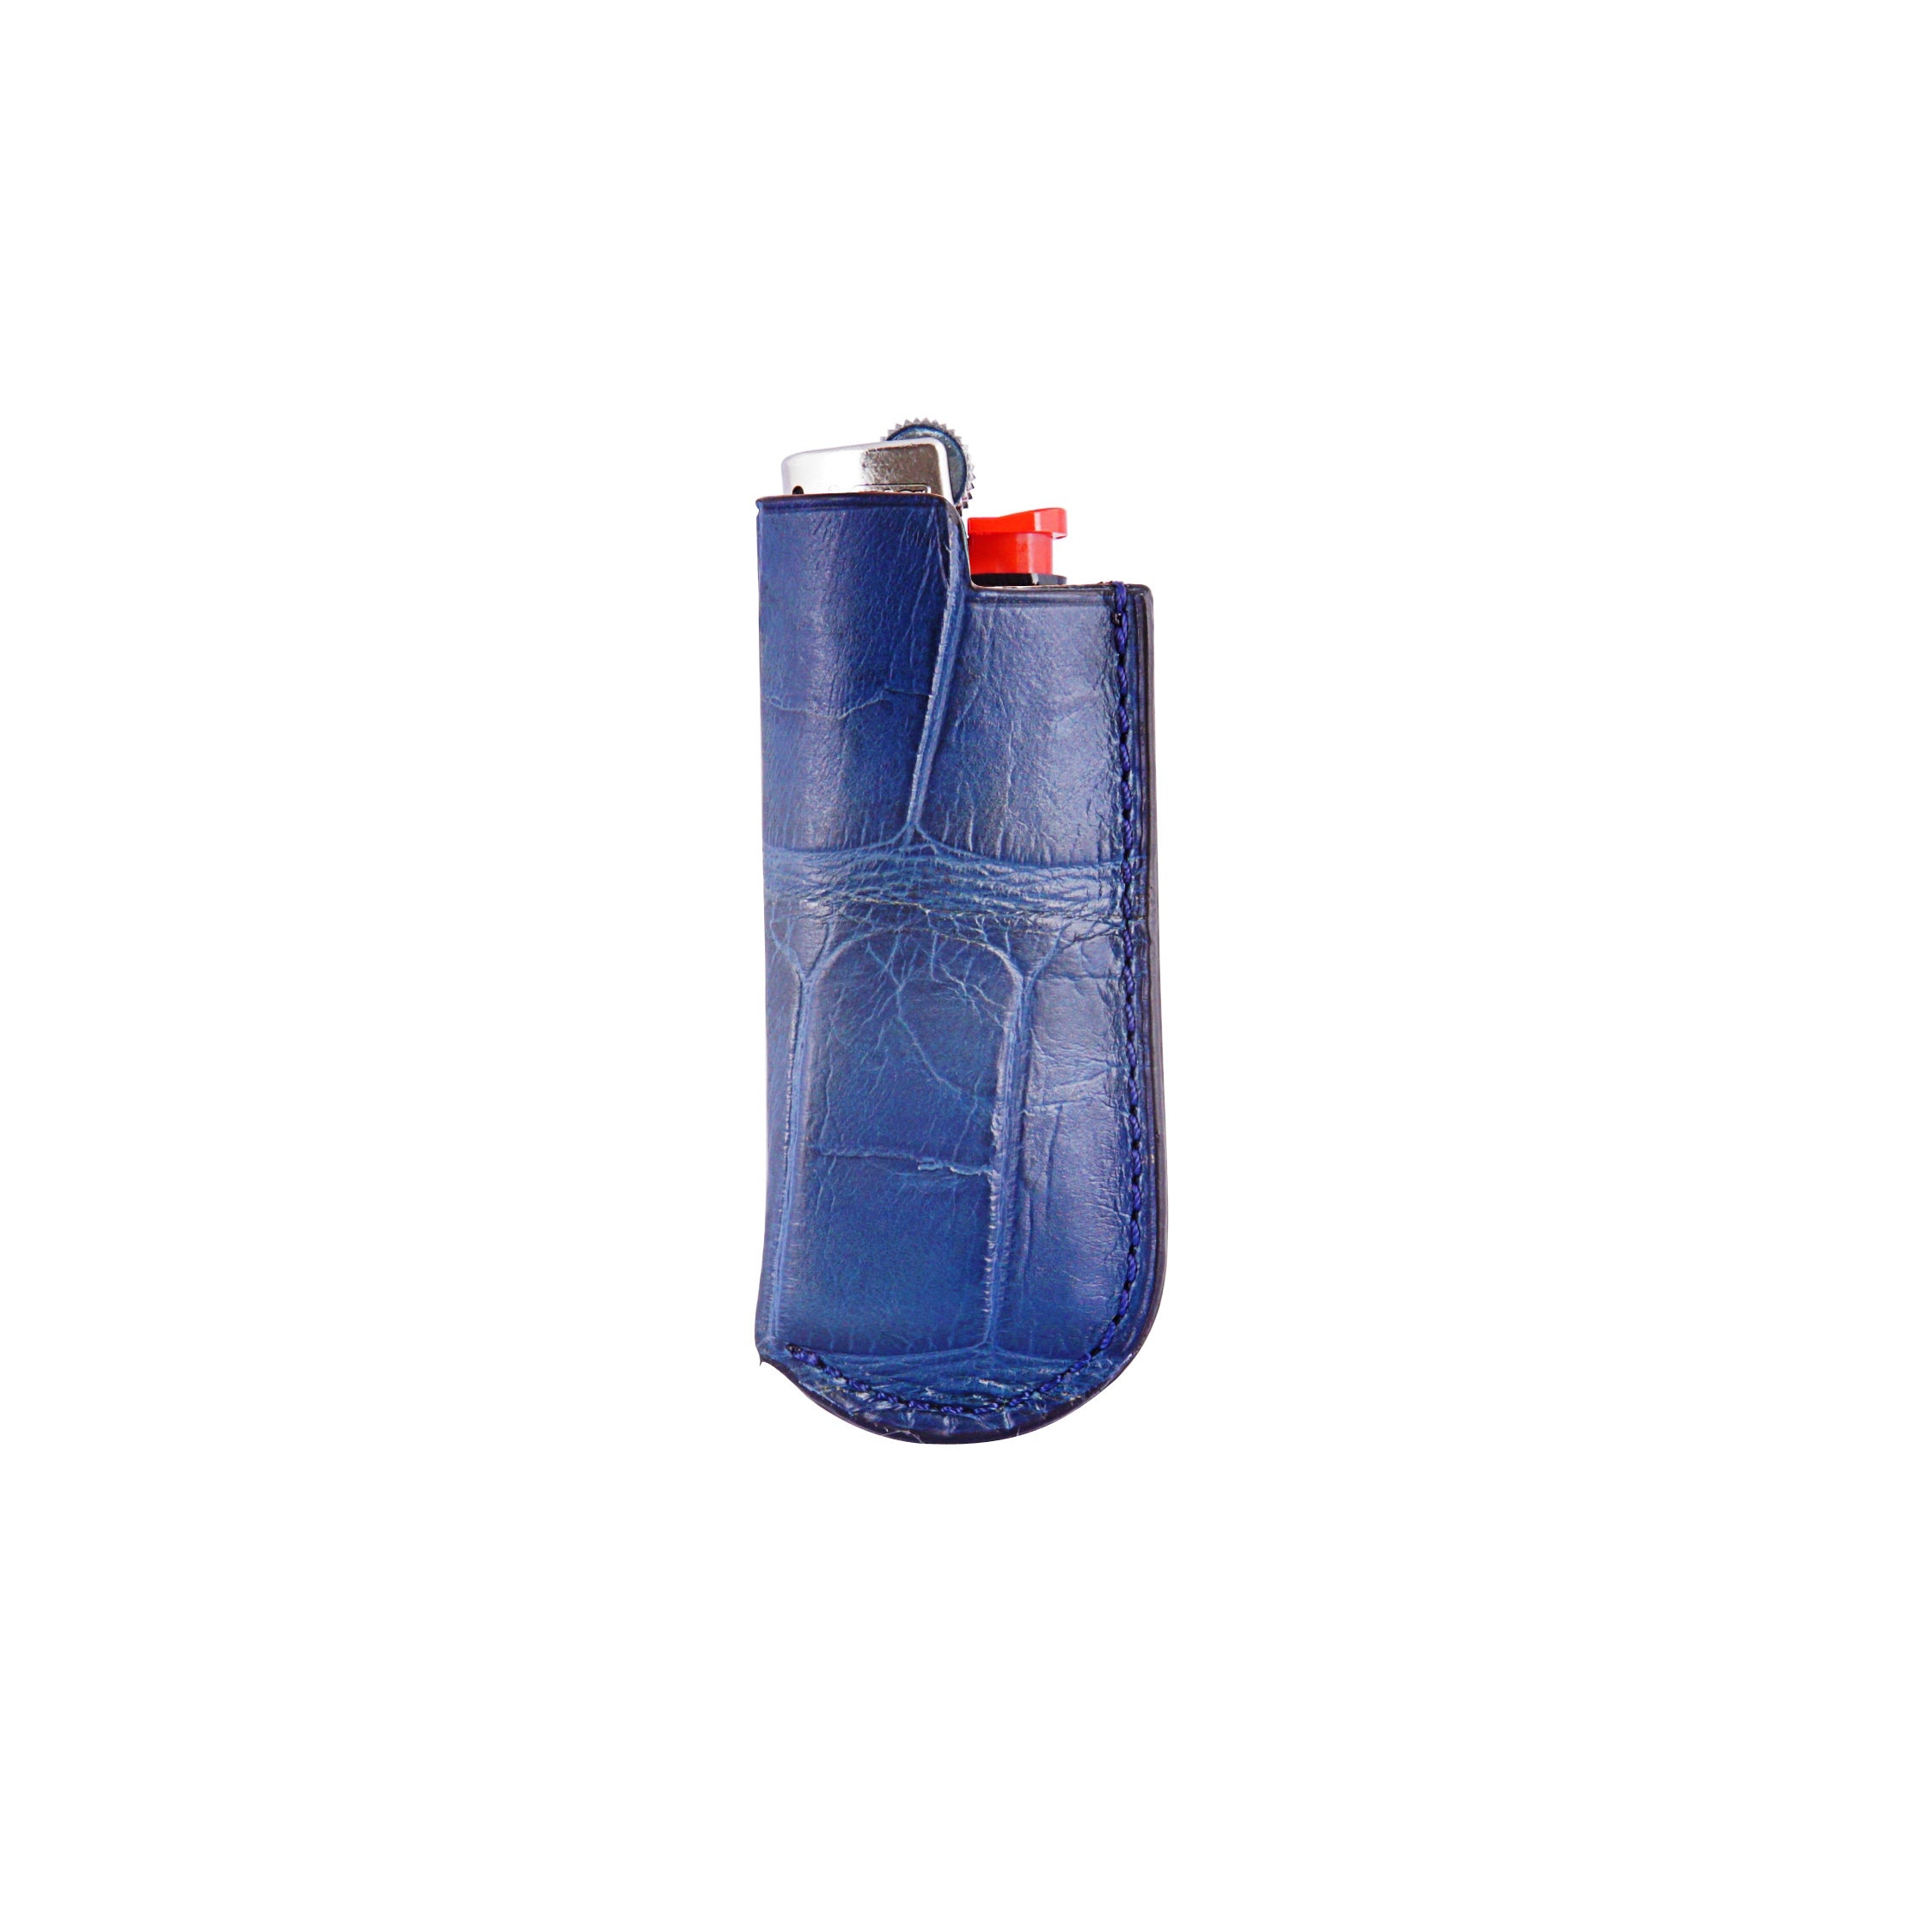 Lighter Case - Blue Crocodile Leather